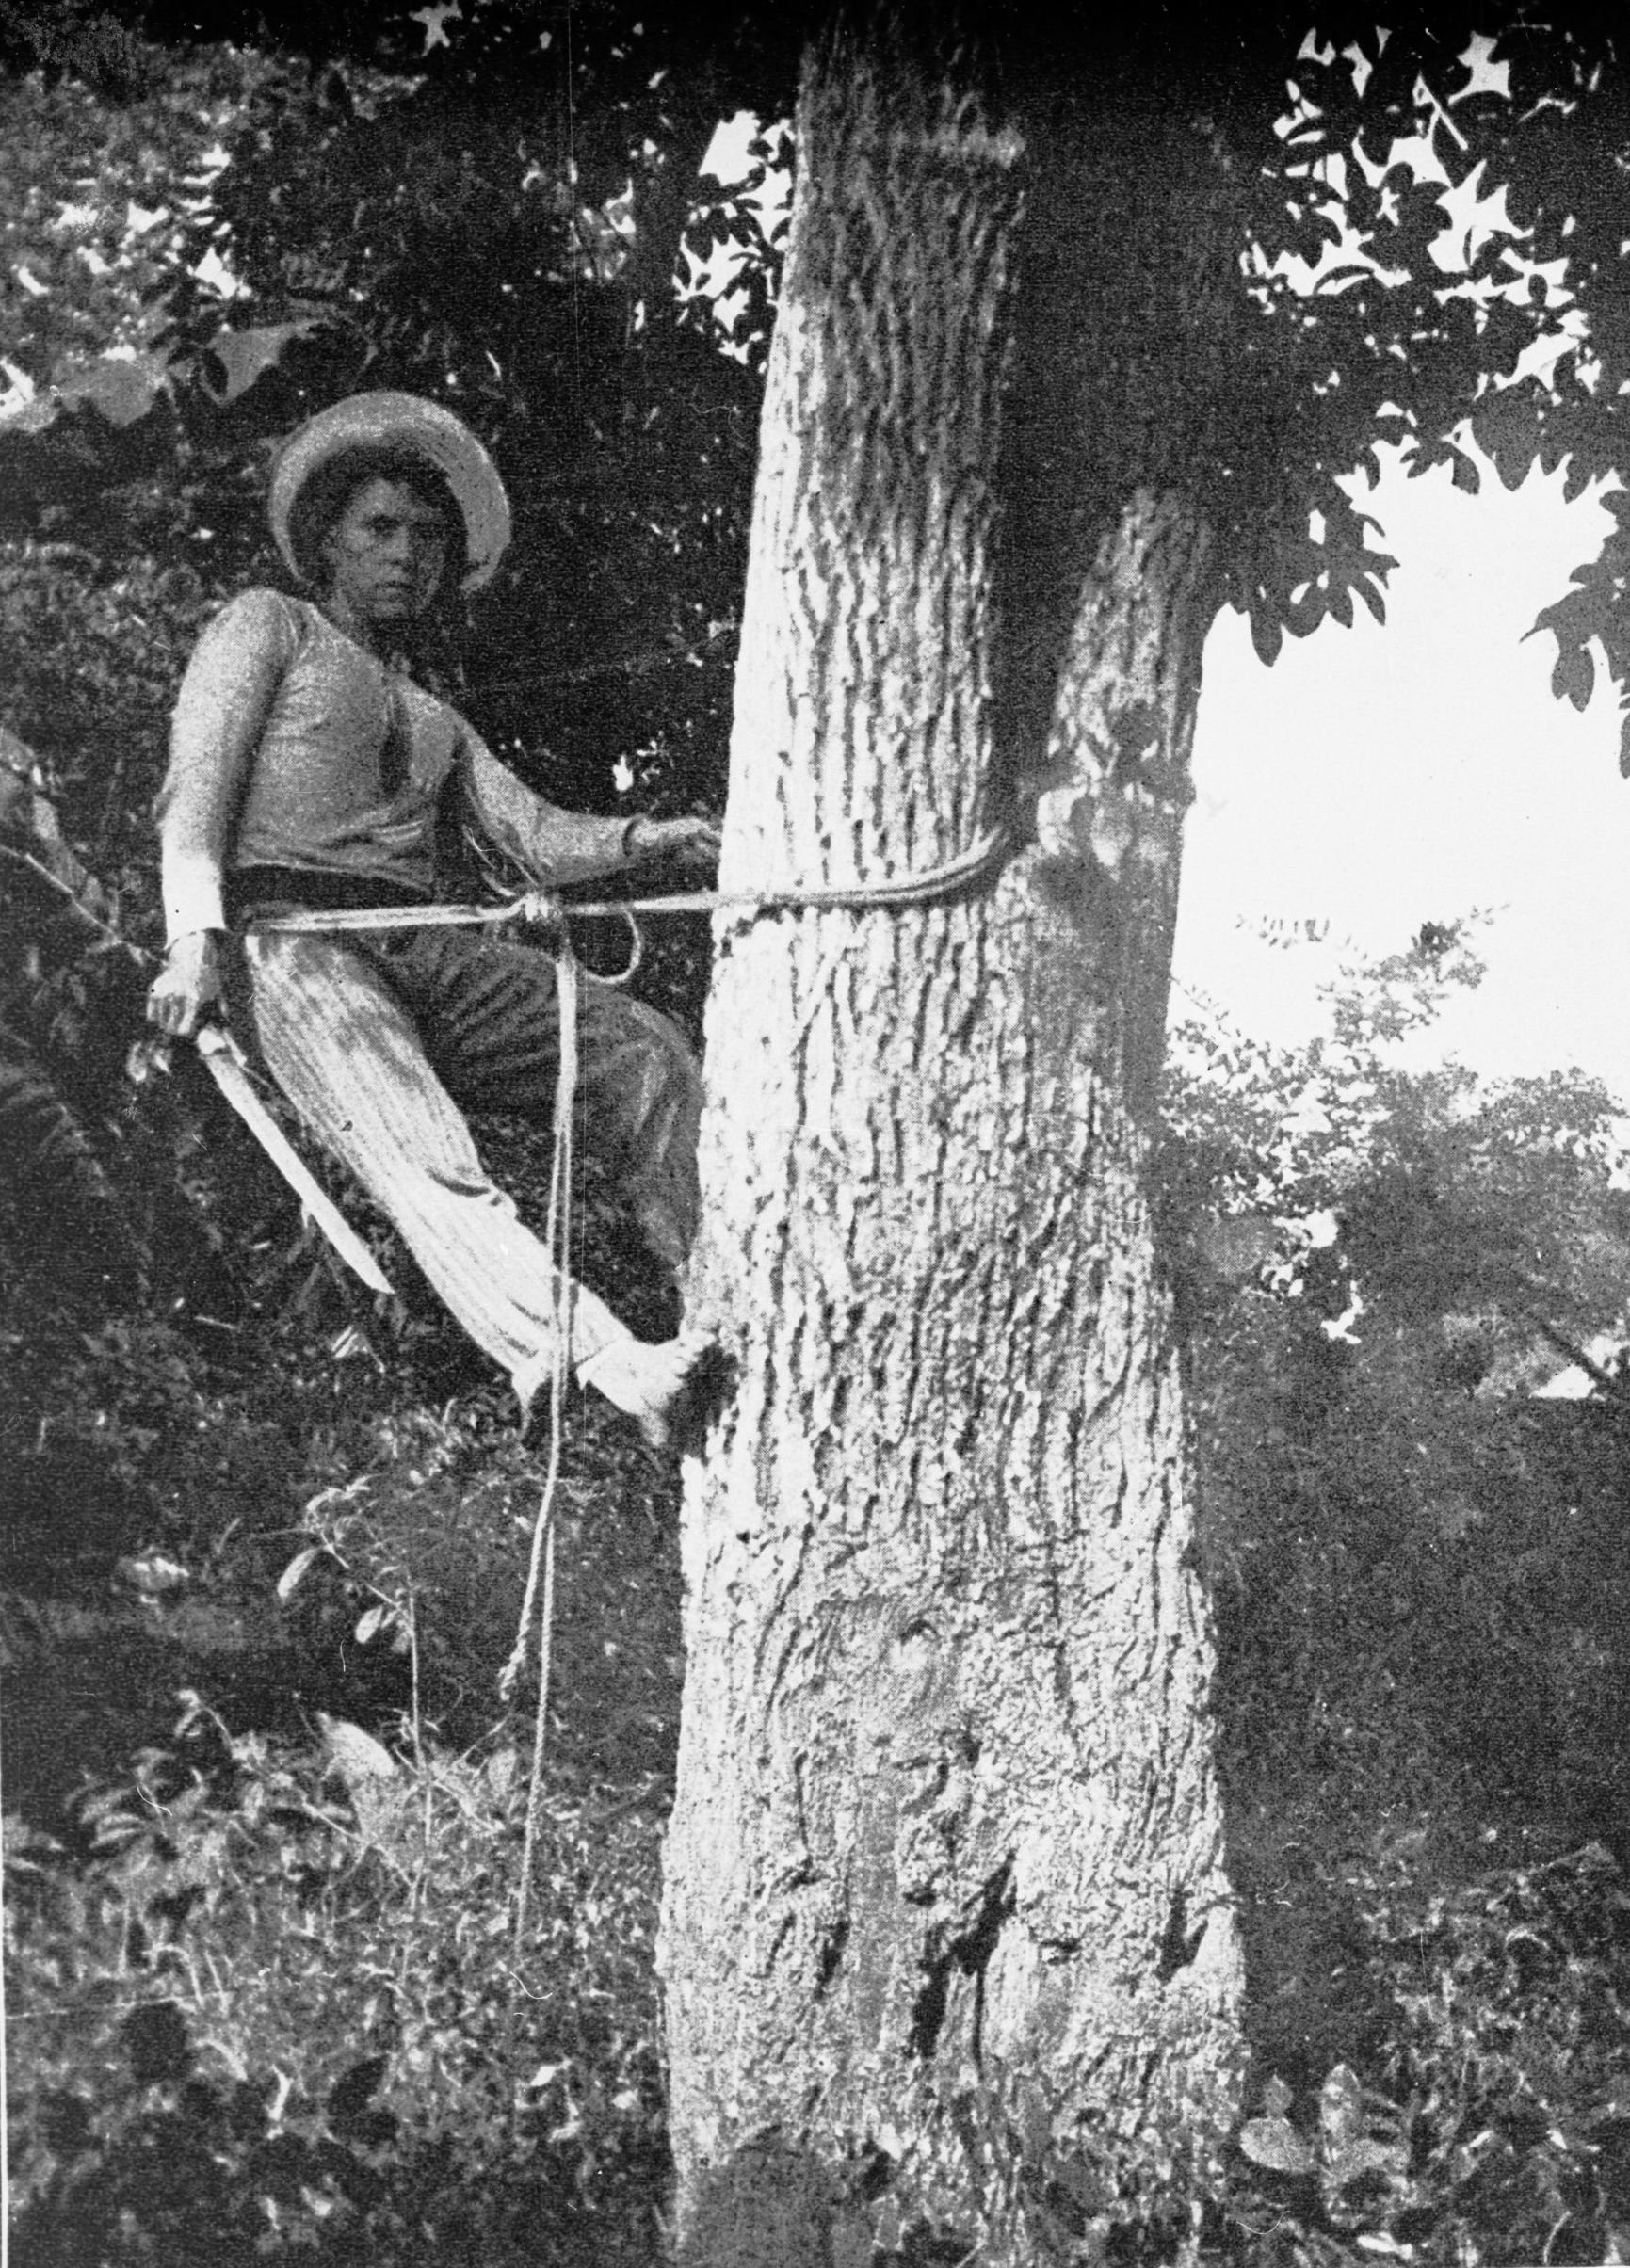 """A """"Chiclero"""" at work in Mexico, circa 1915. From Wikimedia Commons / Public Domain."""